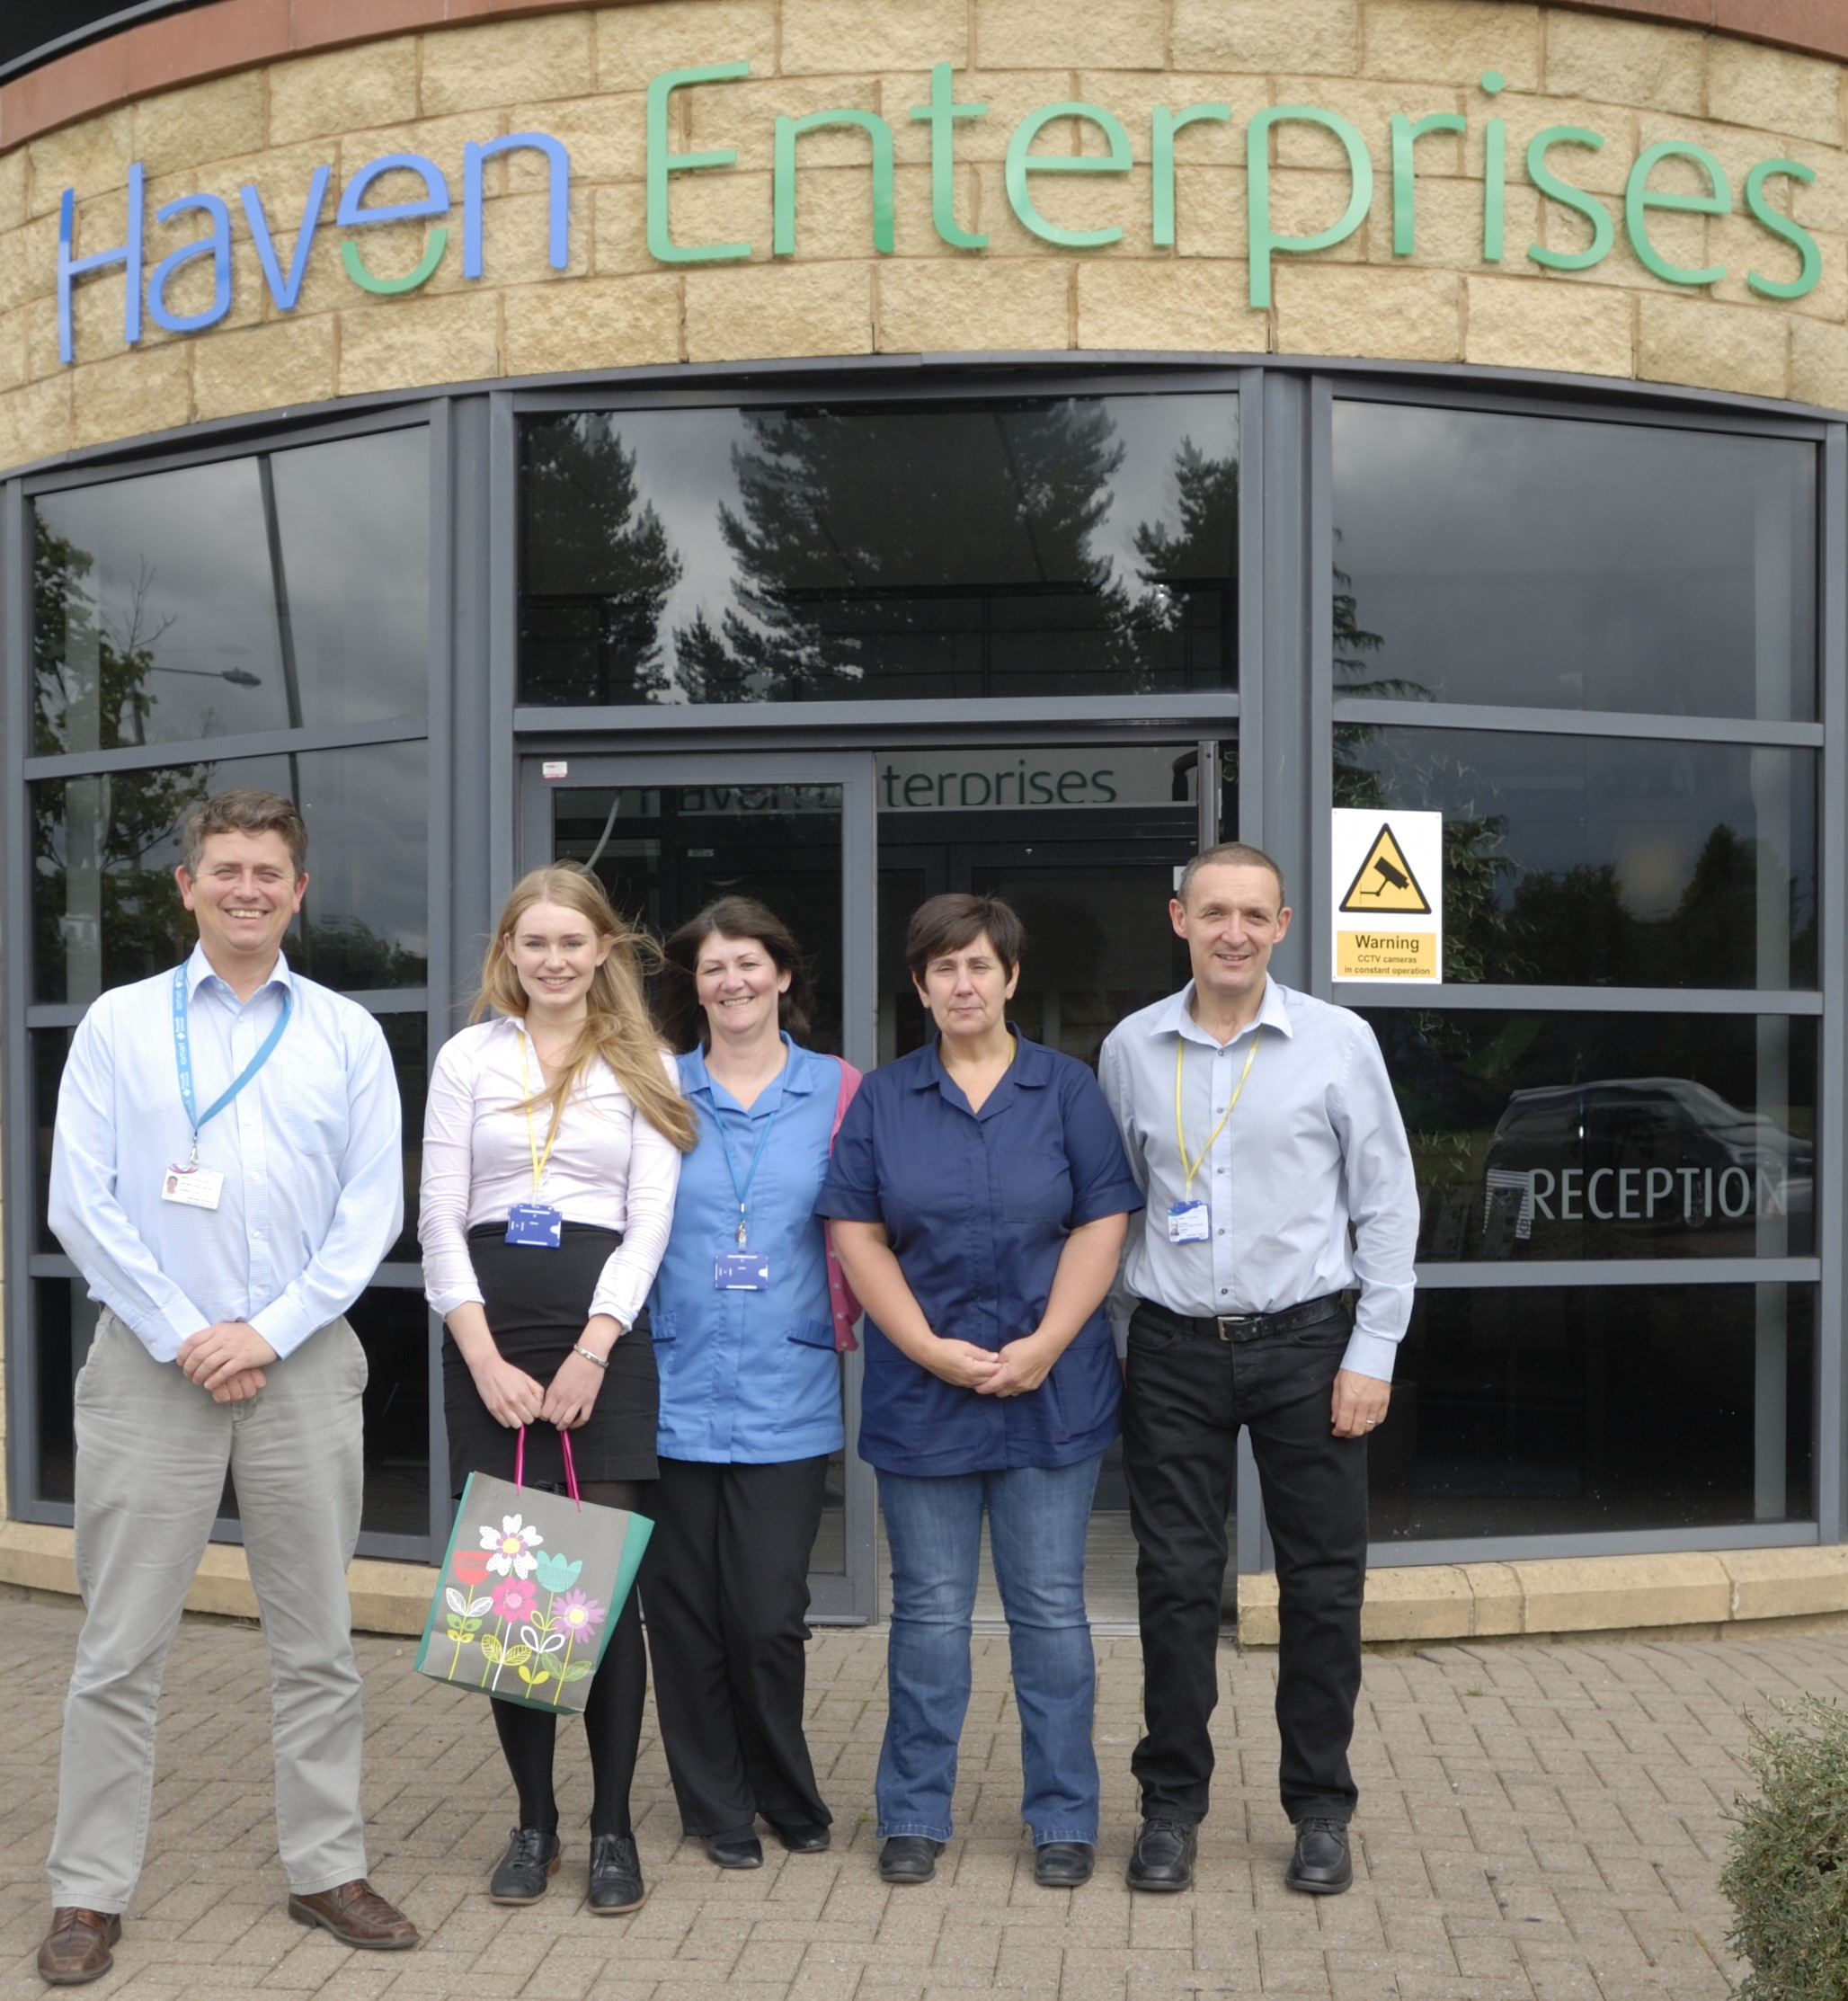 Heather and staff outside Haven PTS factory